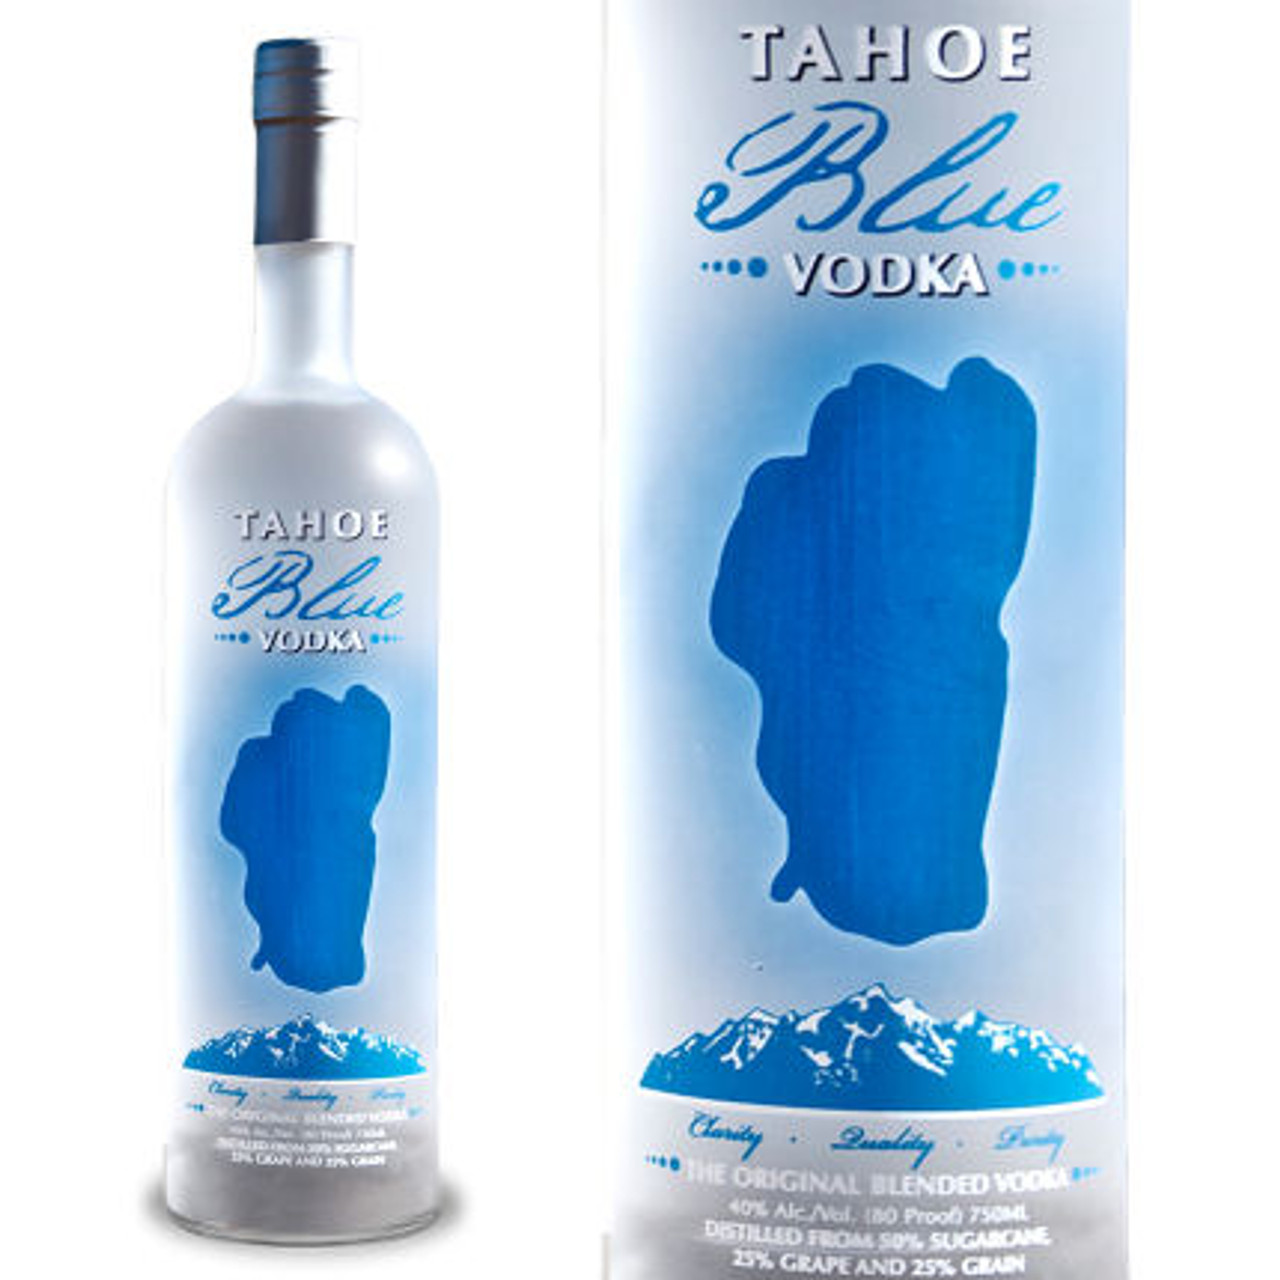 Tahoe Blue Vodka 750ml